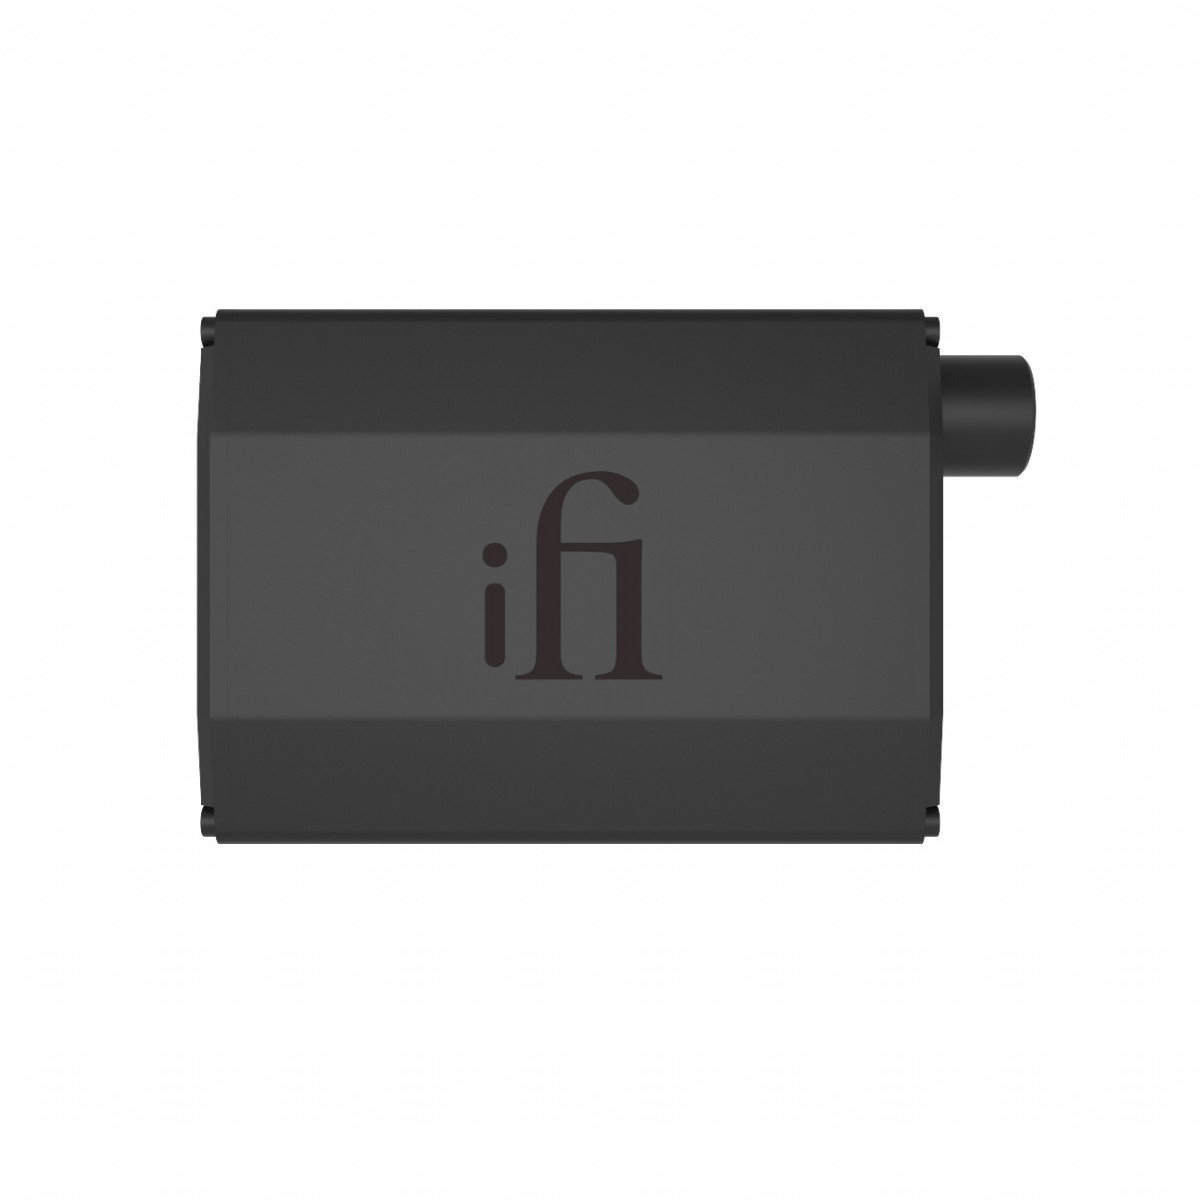 iFi Audio Nano iDSD Black Label | Nano iDSD BL |